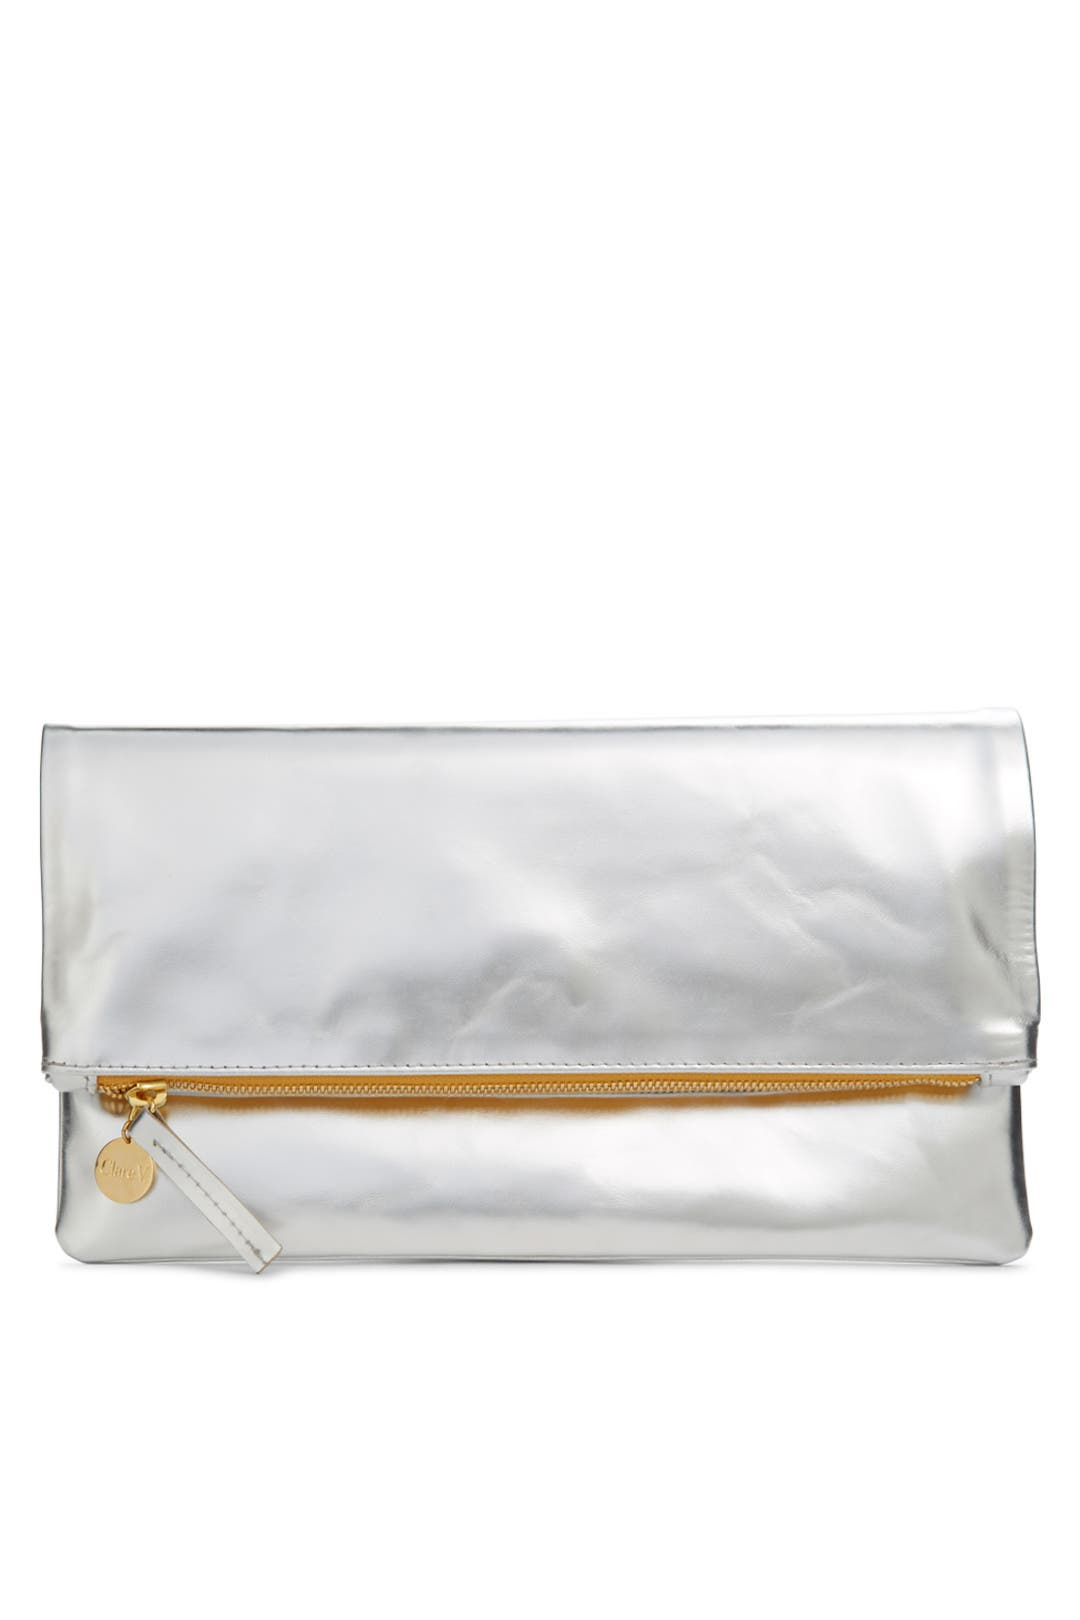 Mirror Foldover Clutch by Clare V.